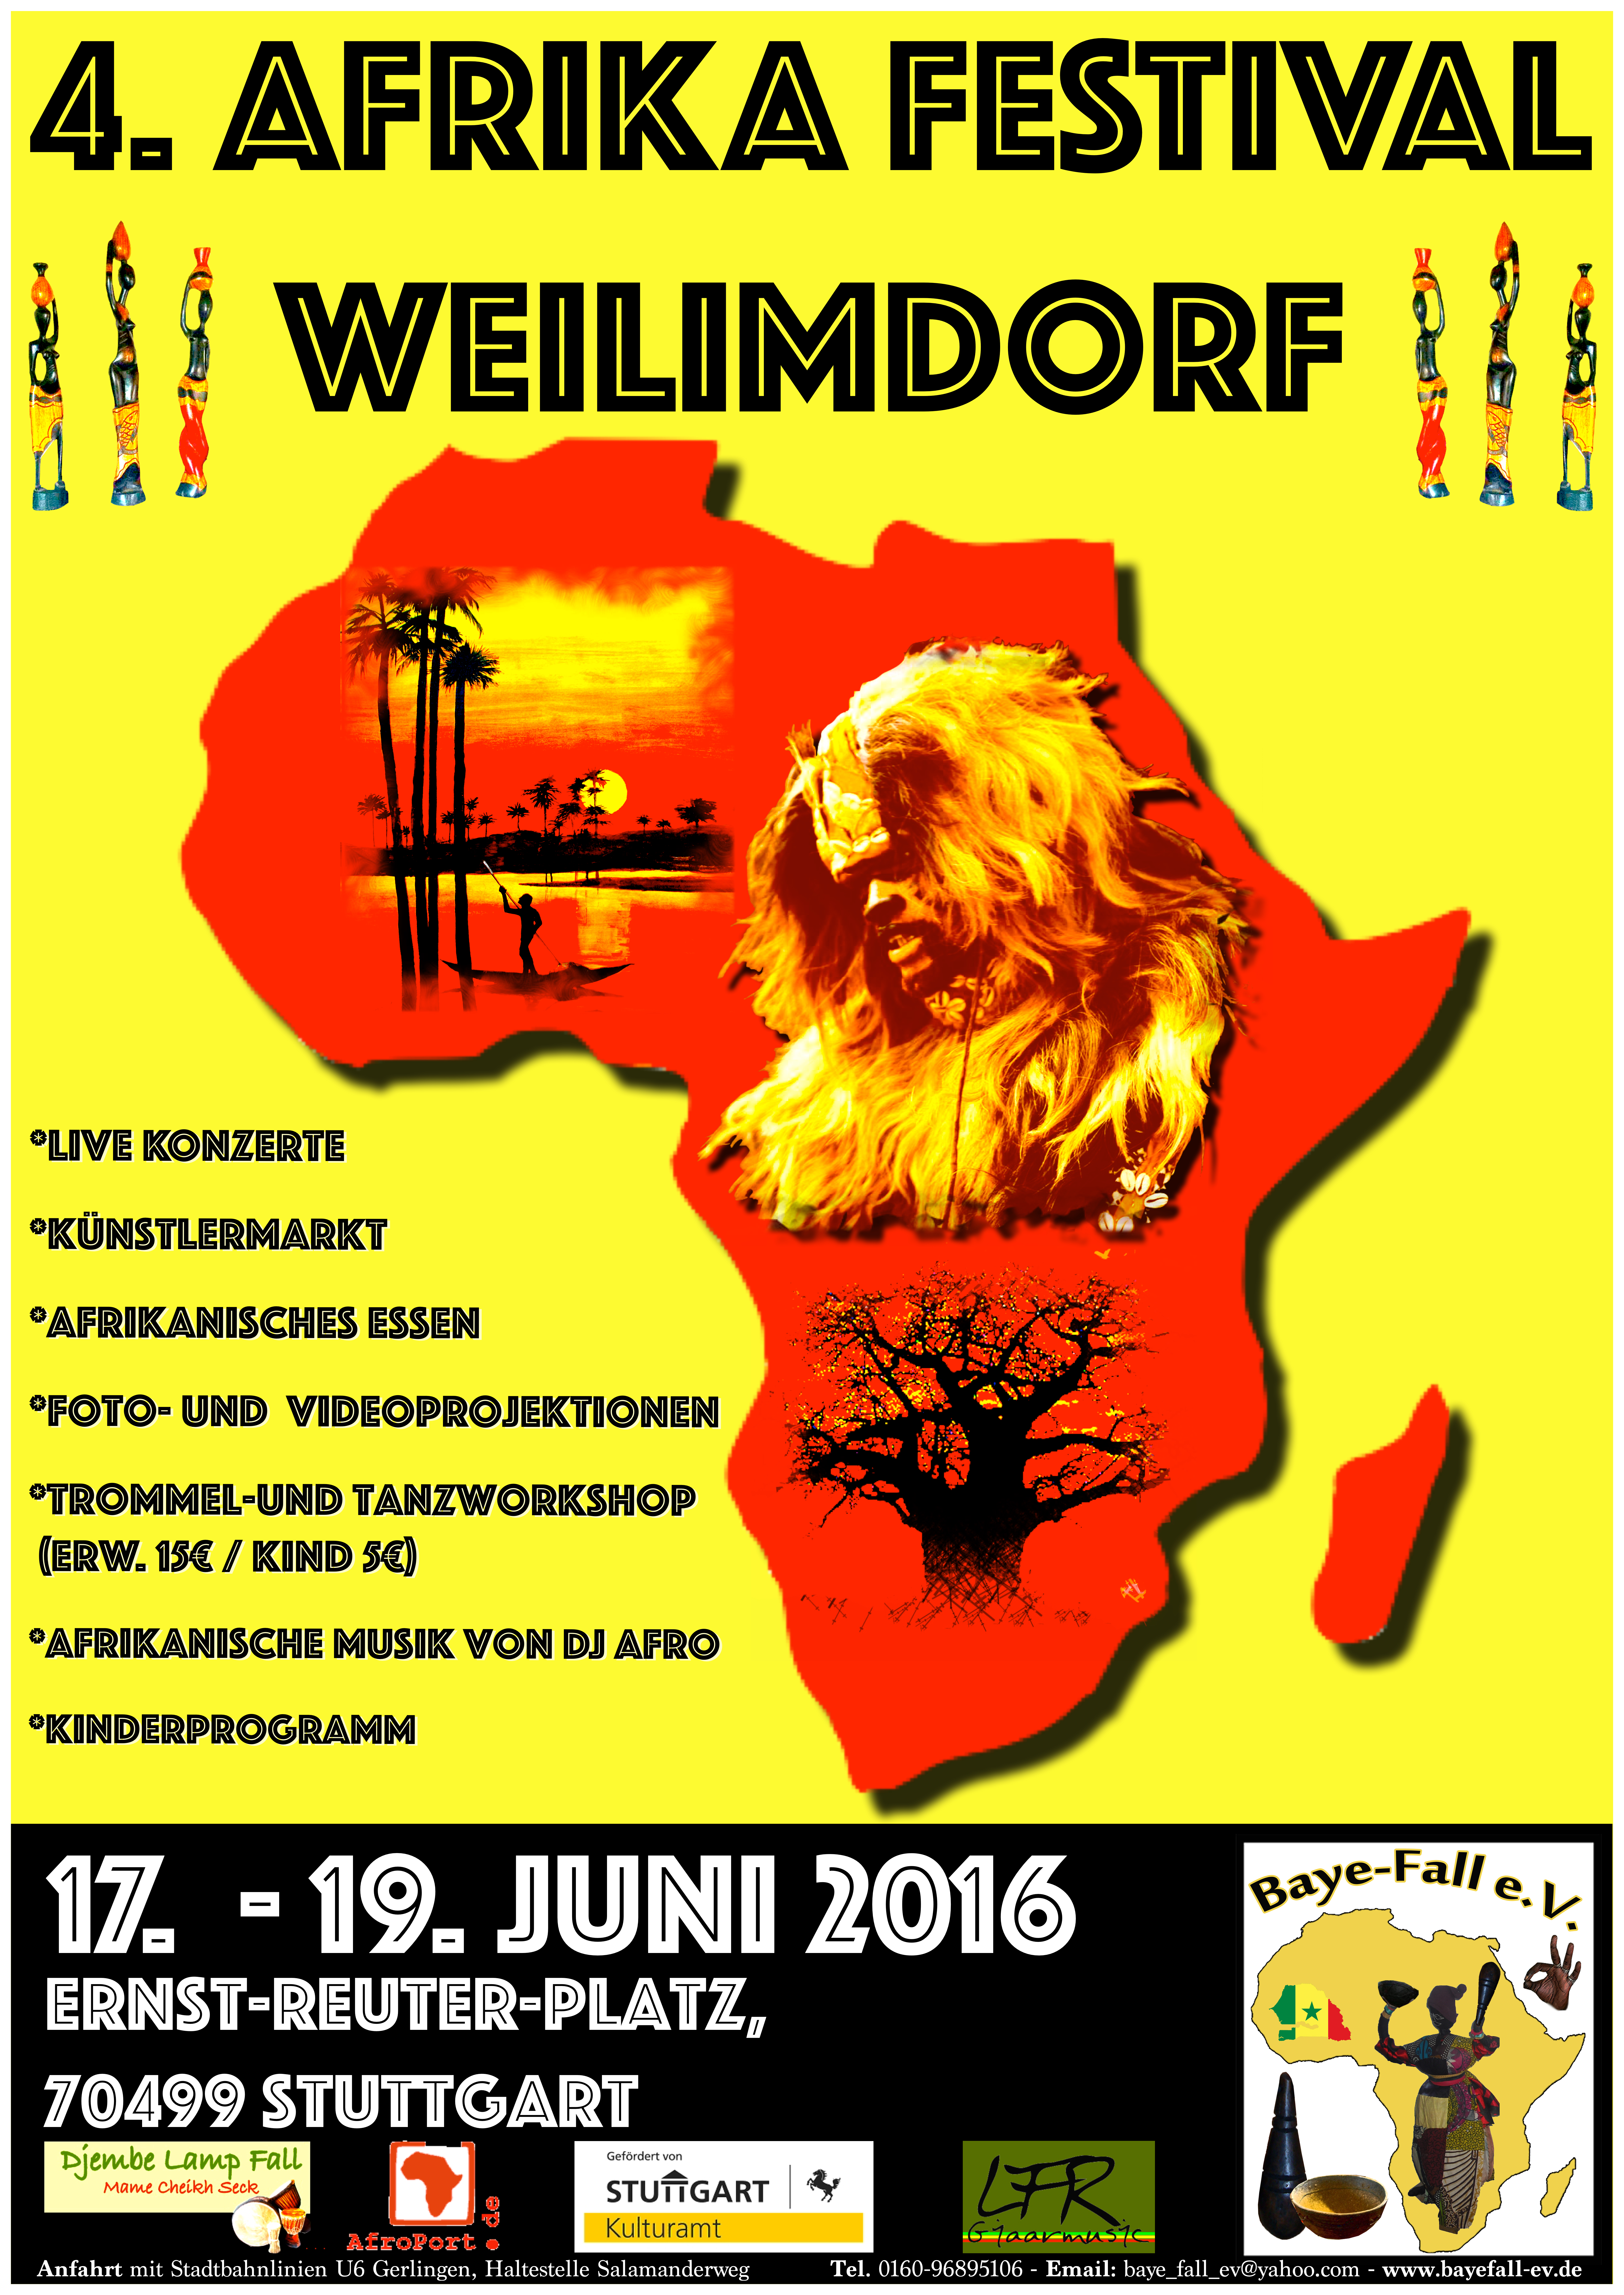 Afrika Festival Weilimdorf Poster 2016